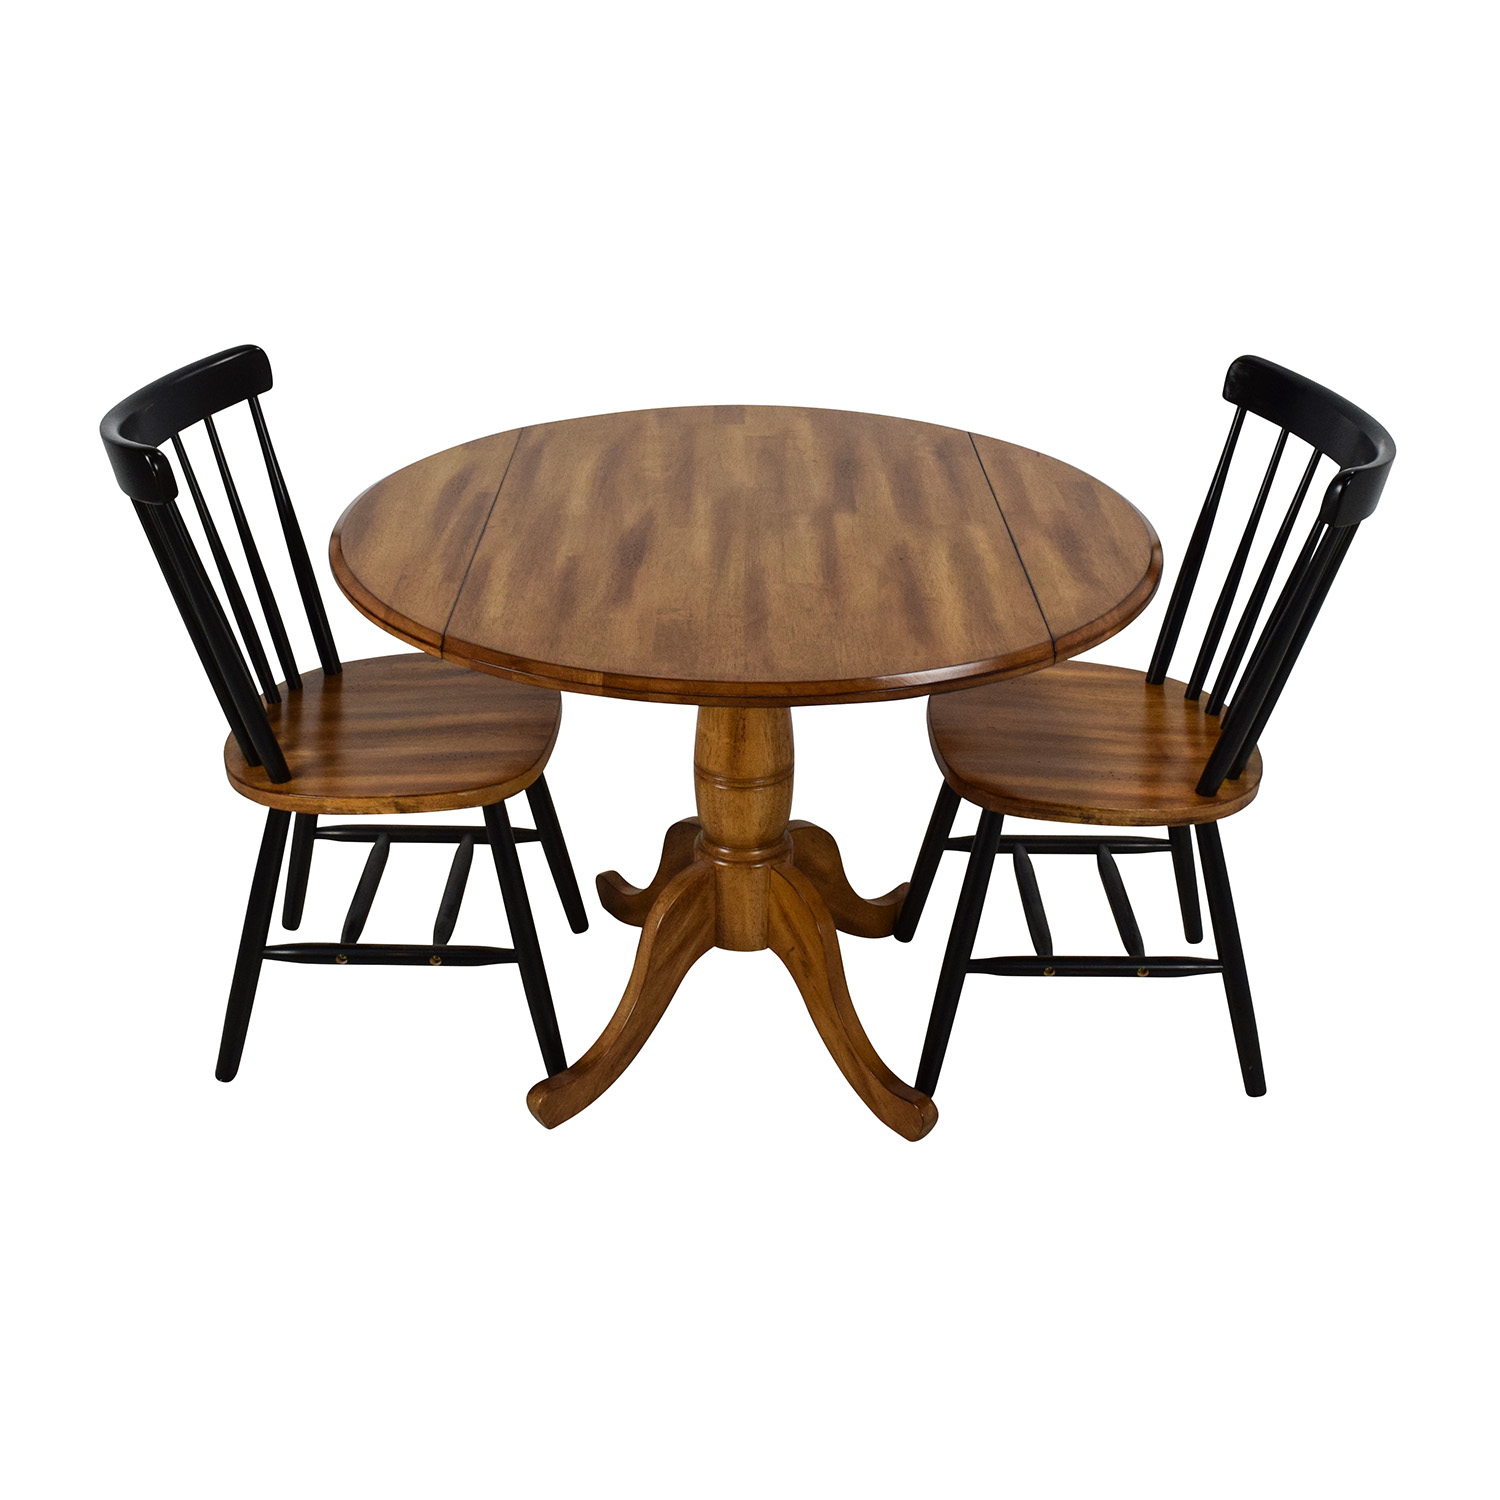 OFF Raymour & Flanigan Raymour & Flanigan Foldable Table Set